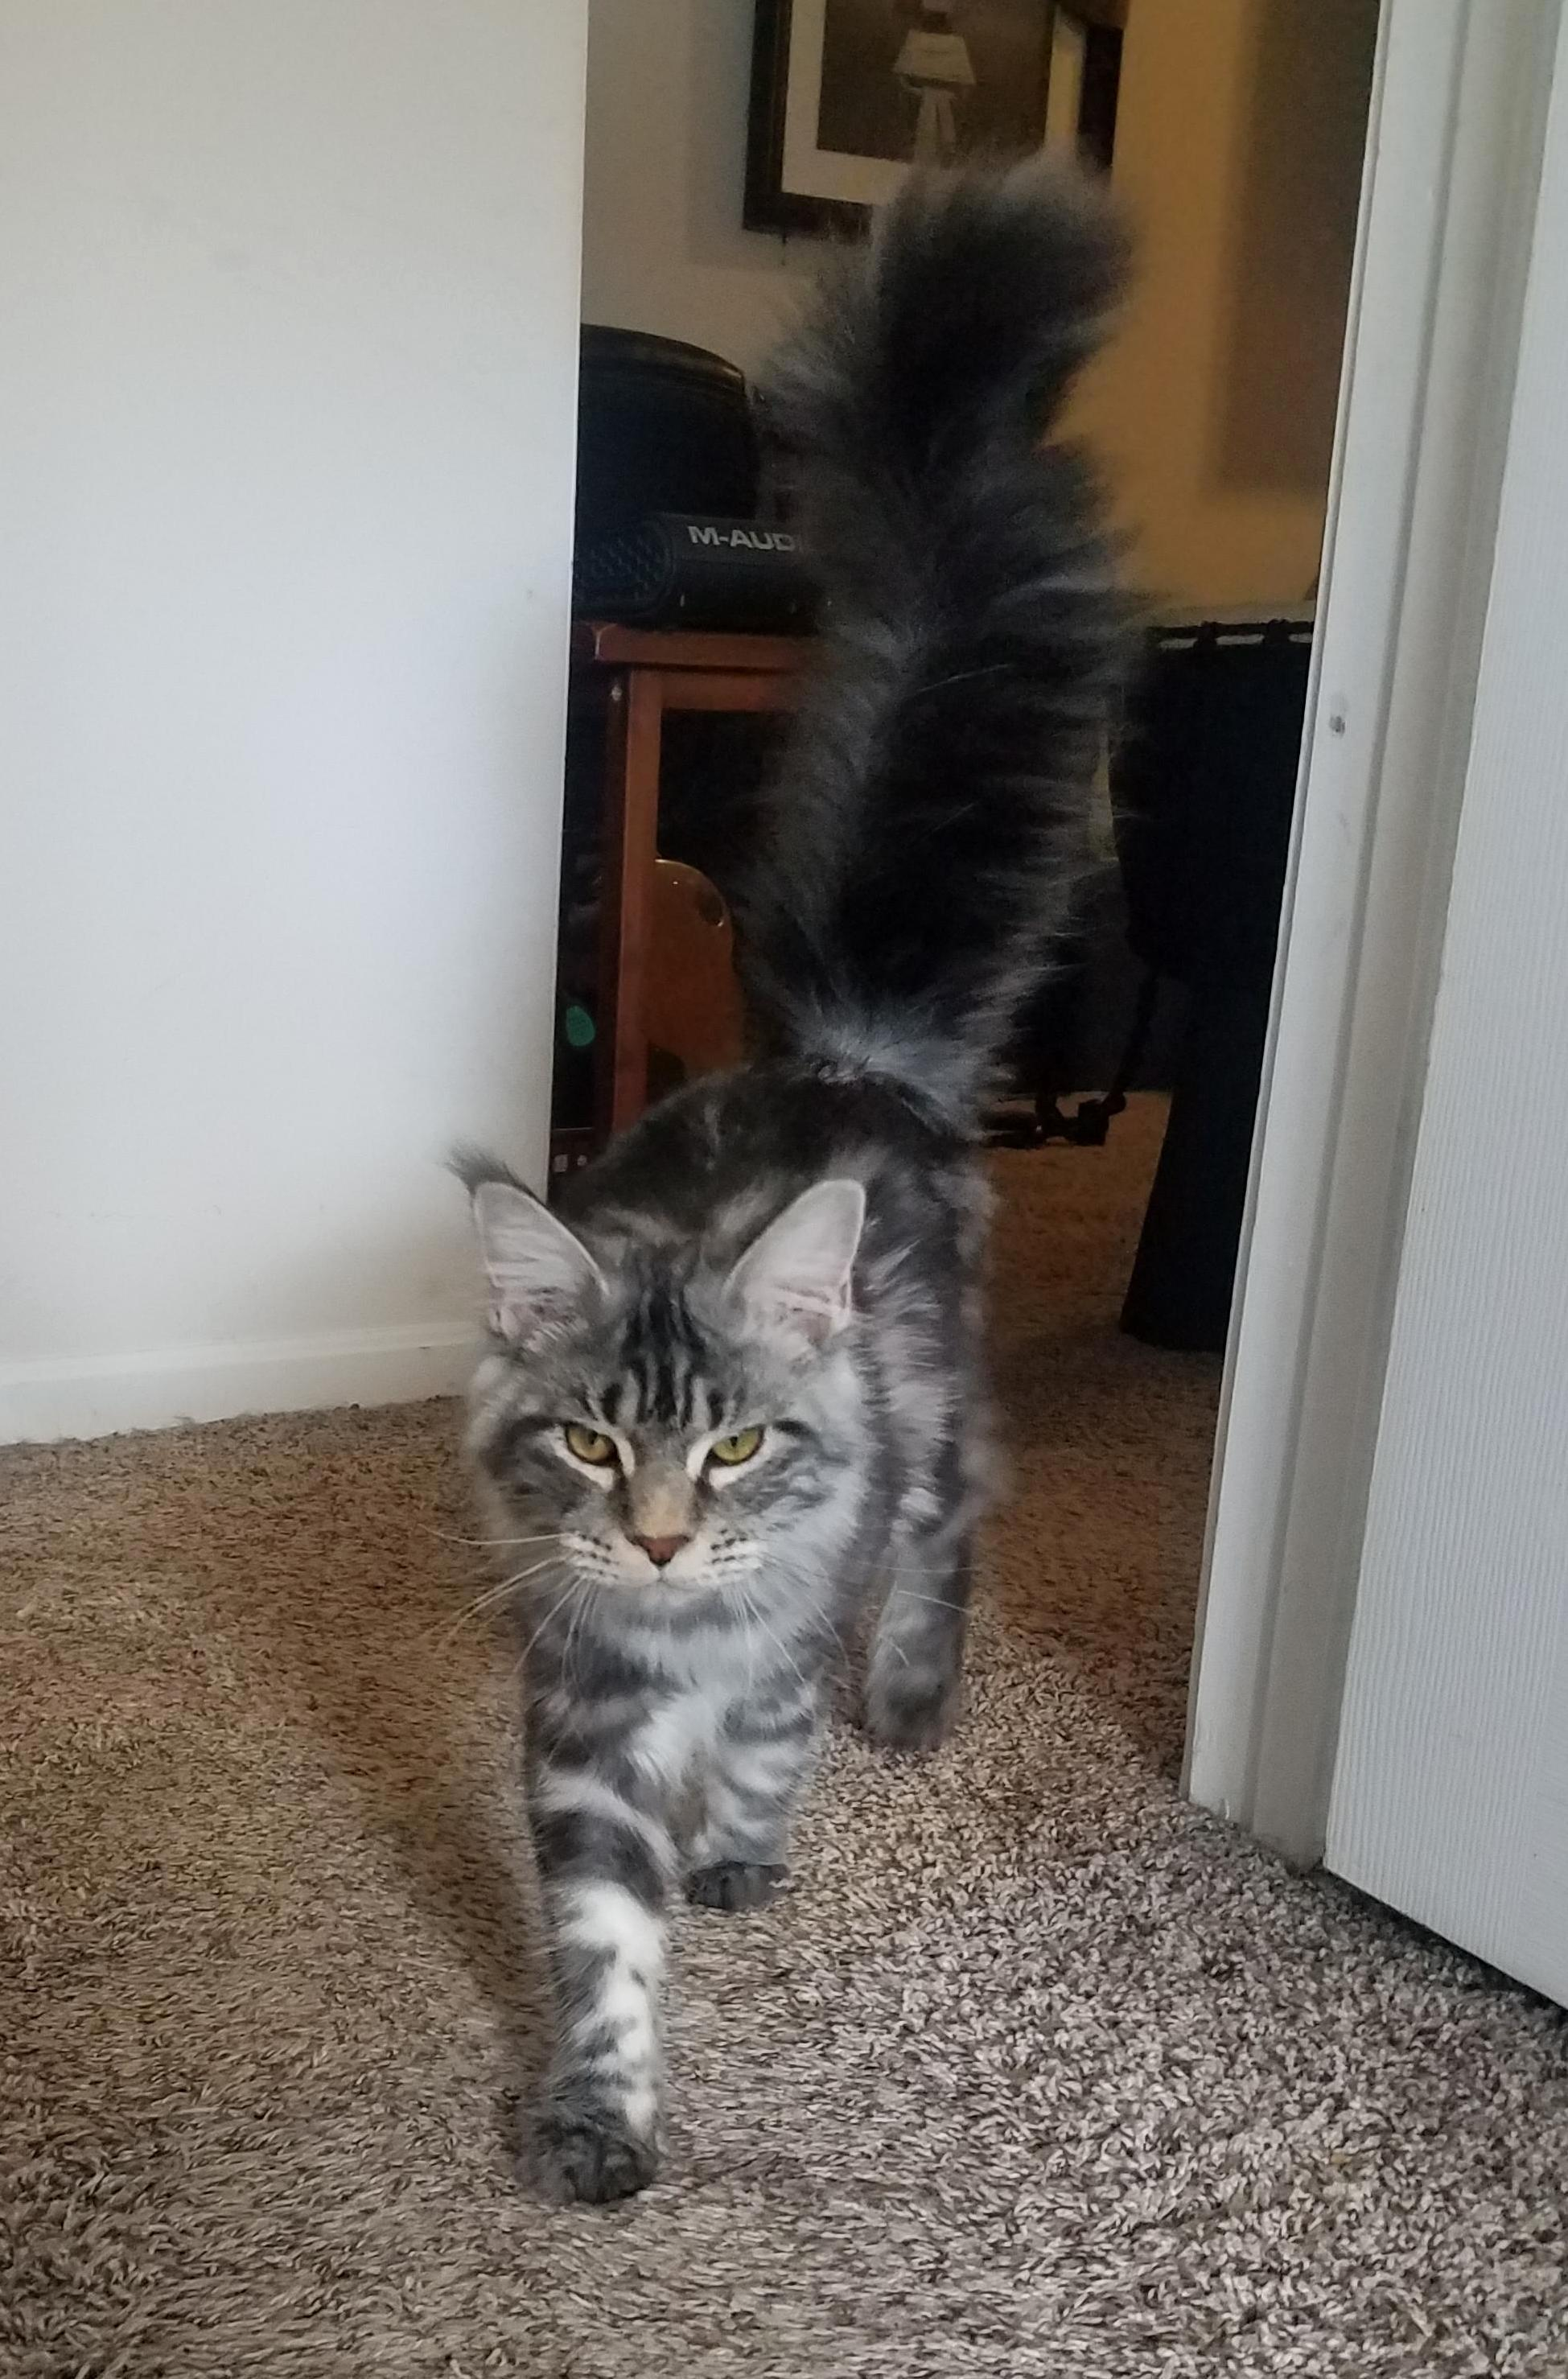 Mega floof tail.